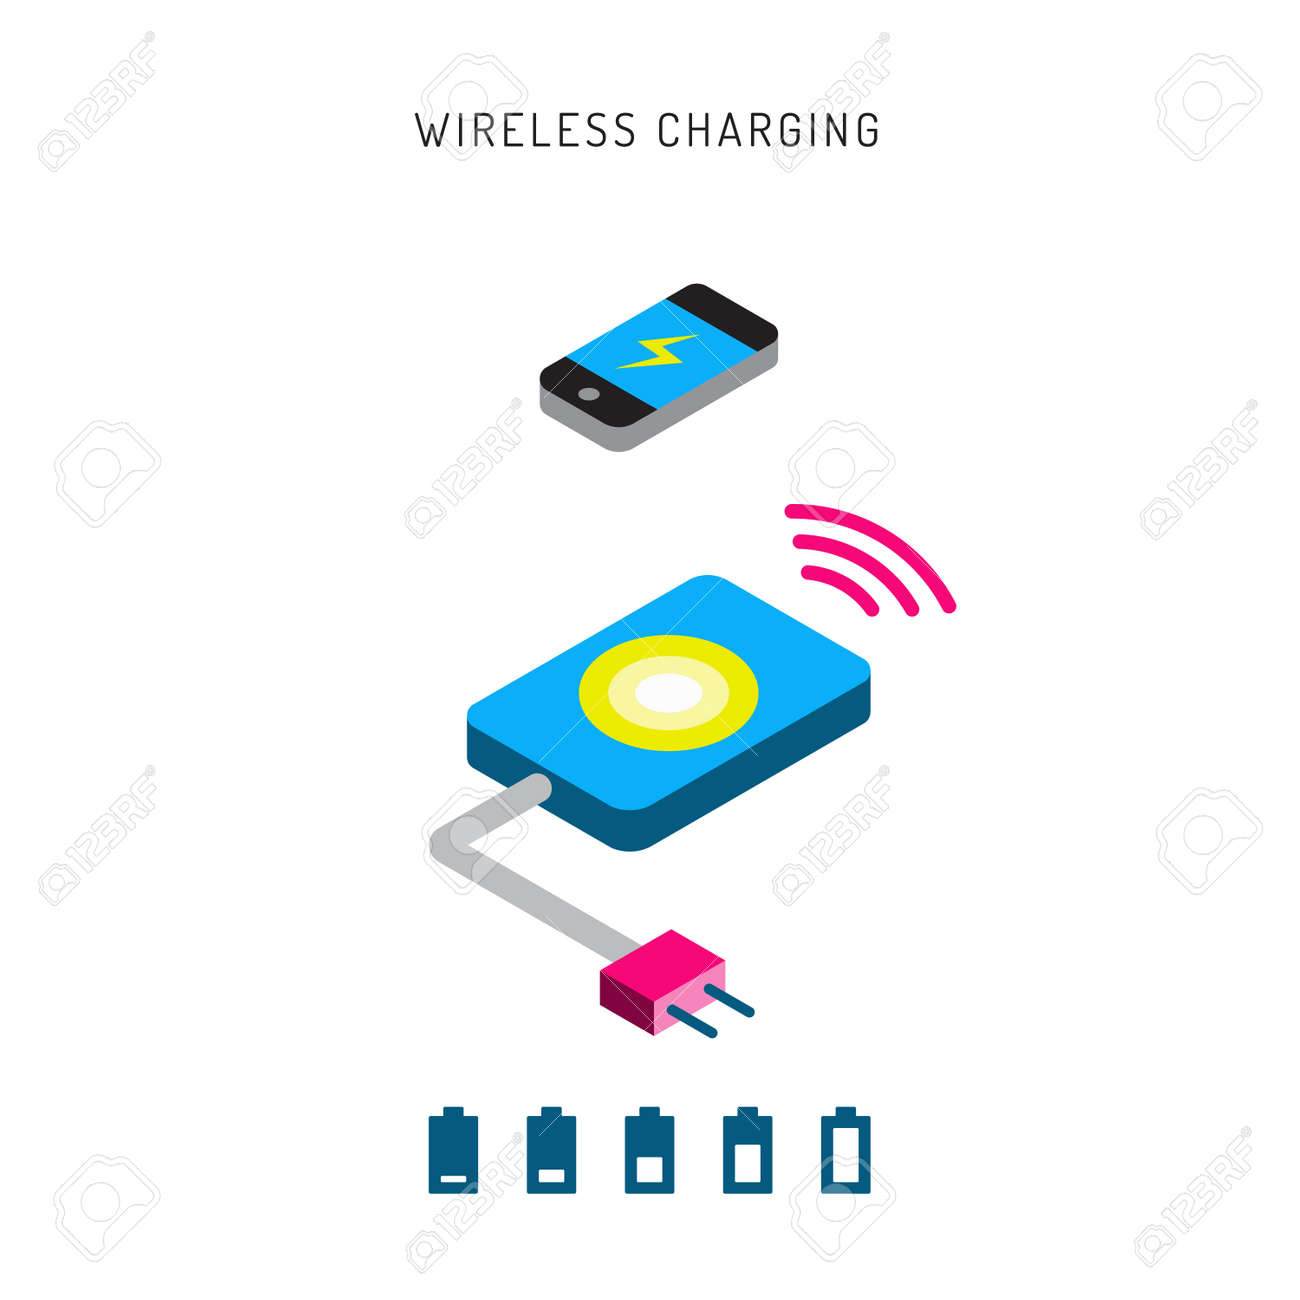 Wireless Battery Charger Charging Mobile Phones Wireless Charging Phones Outline Wireless